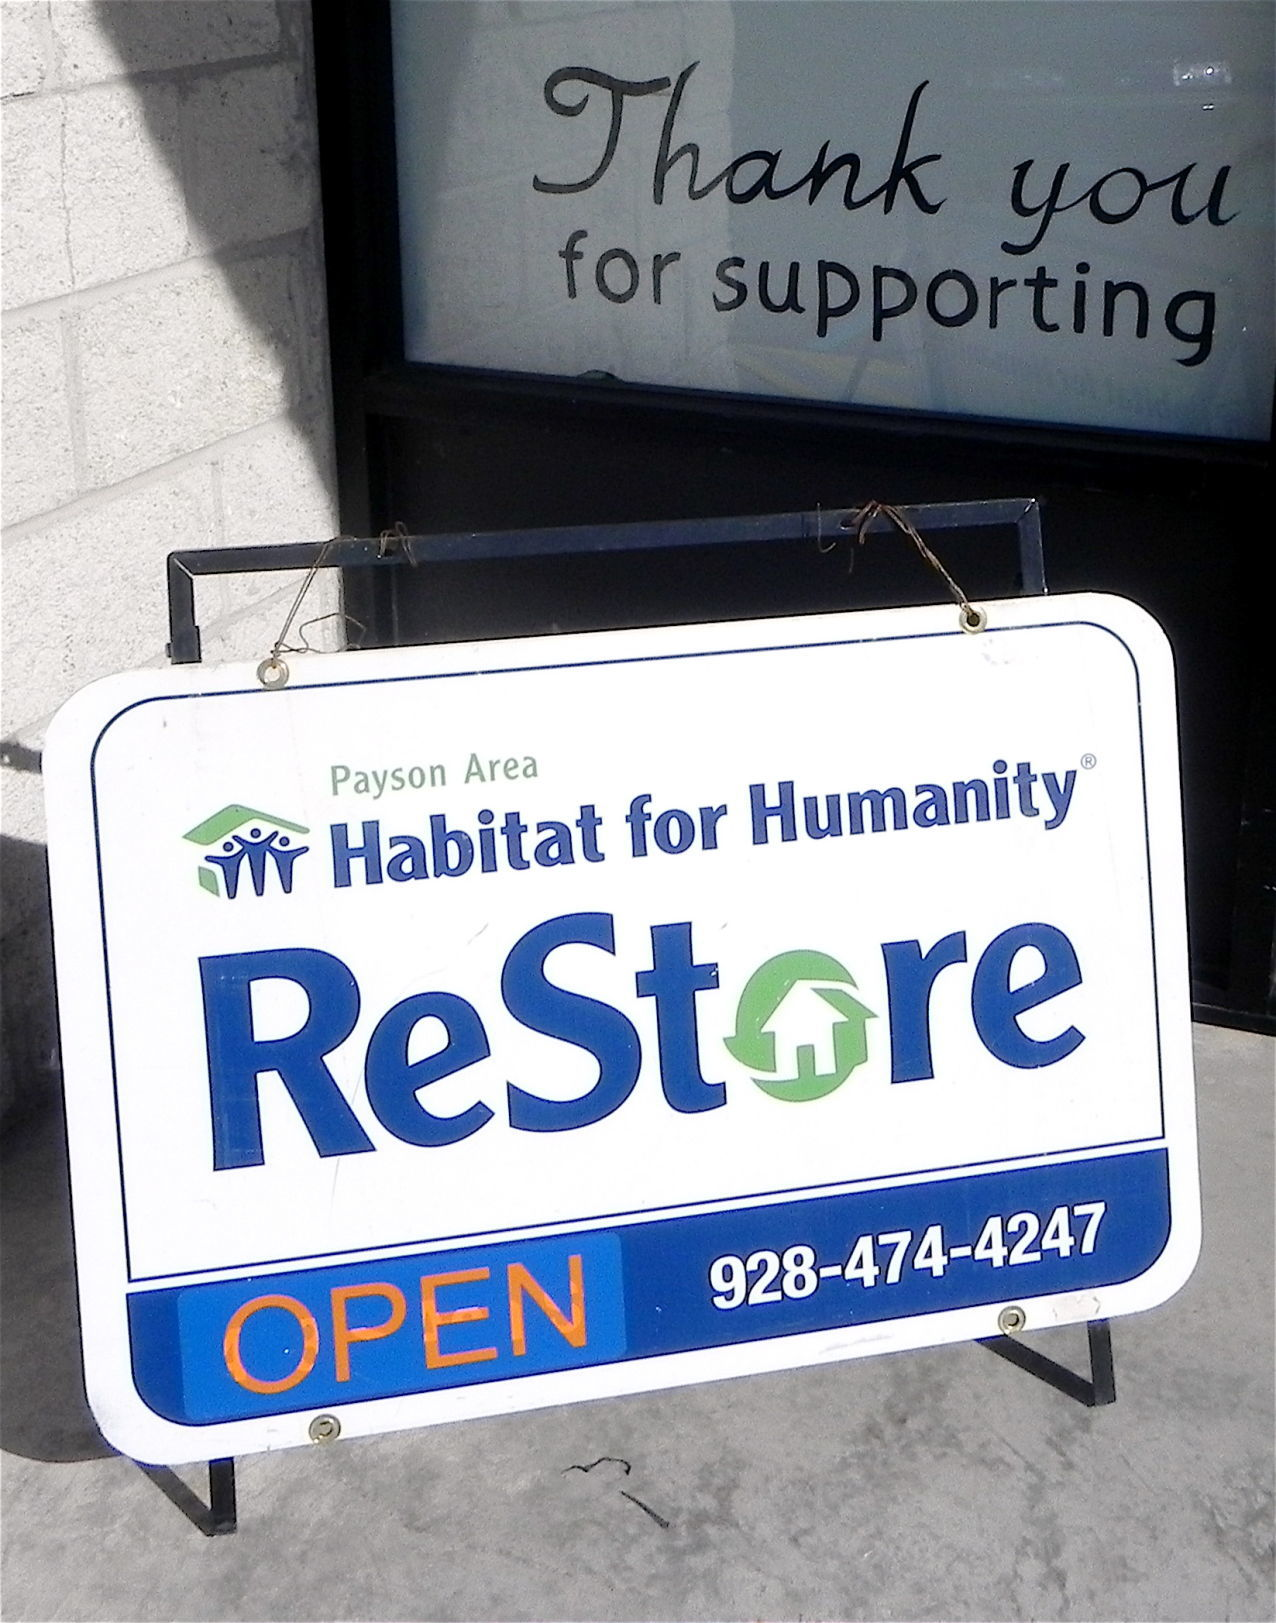 Square Habitat 35 Habitat For Humanity New Board New Staff New Attitude Local